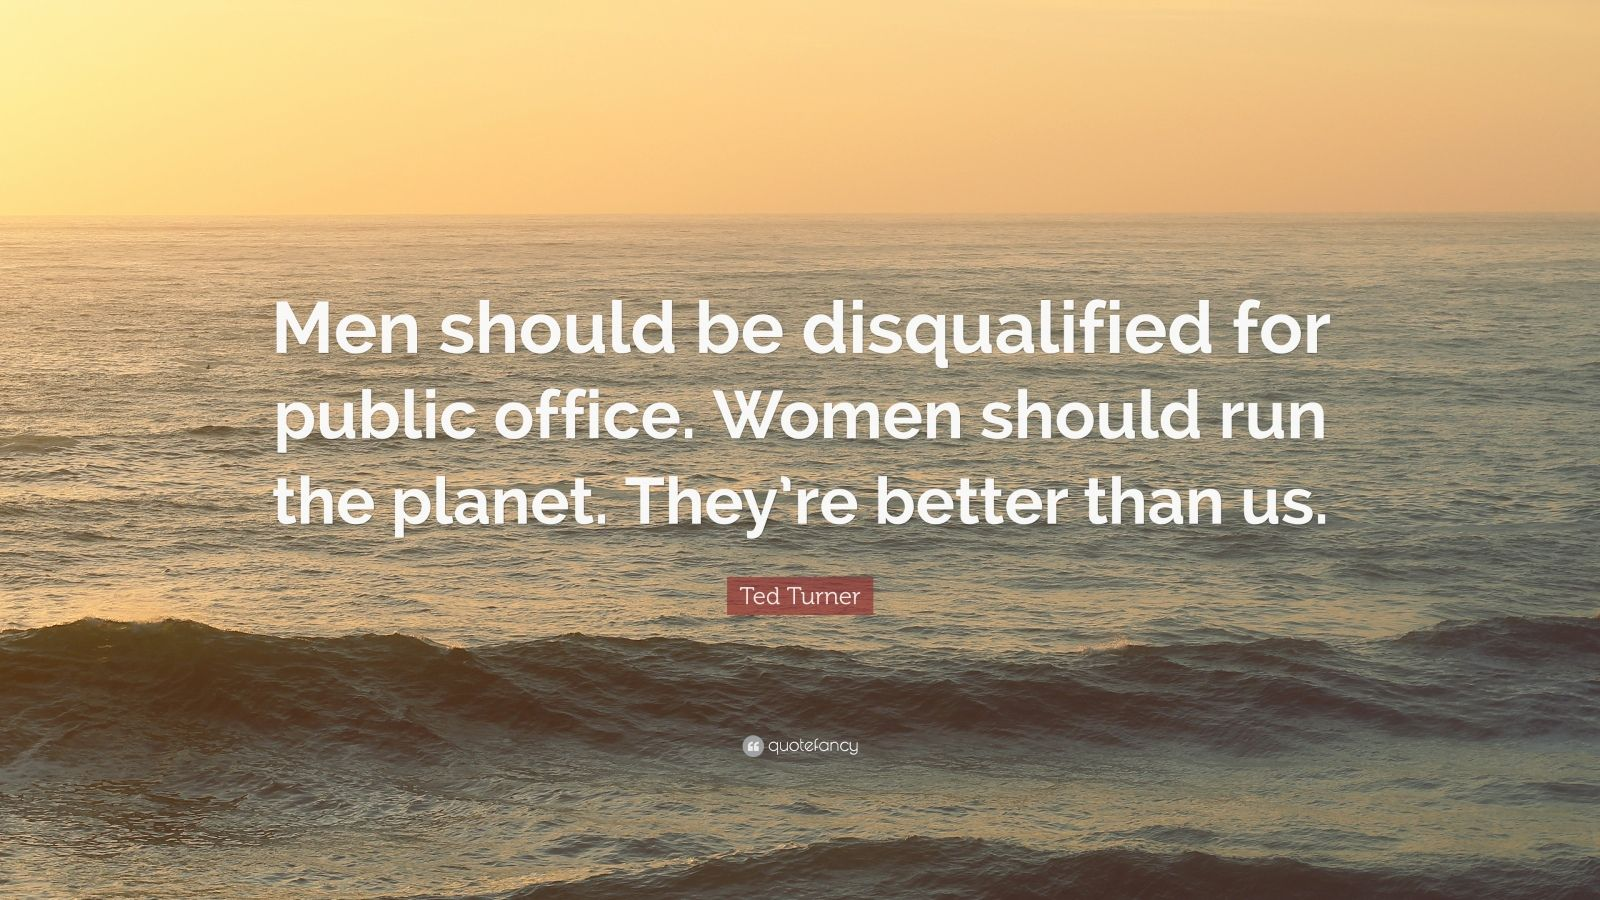 """Ted Turner Quote: """"Men should be disqualified for public office. Women should run the planet. They're better than us."""""""